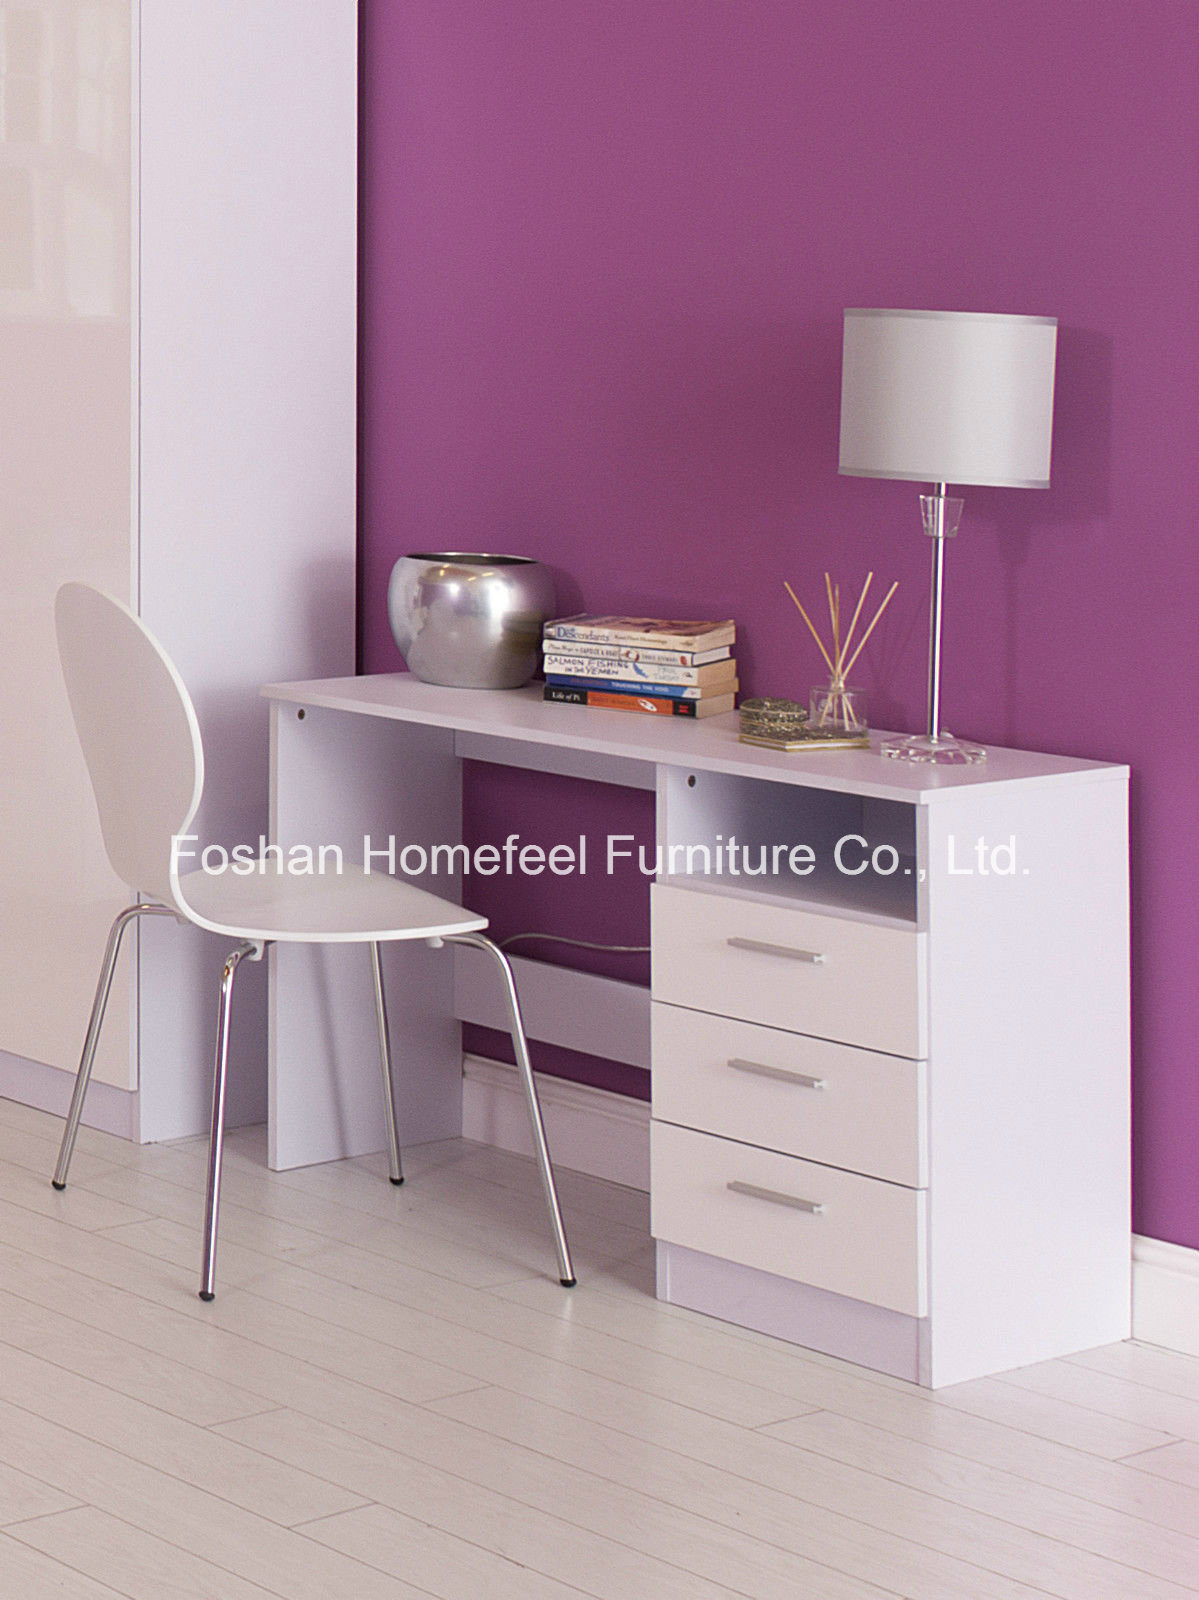 Image of: China Pure White High Gloss Study Desk With 3 Drawers China Study Desk Computer Desk